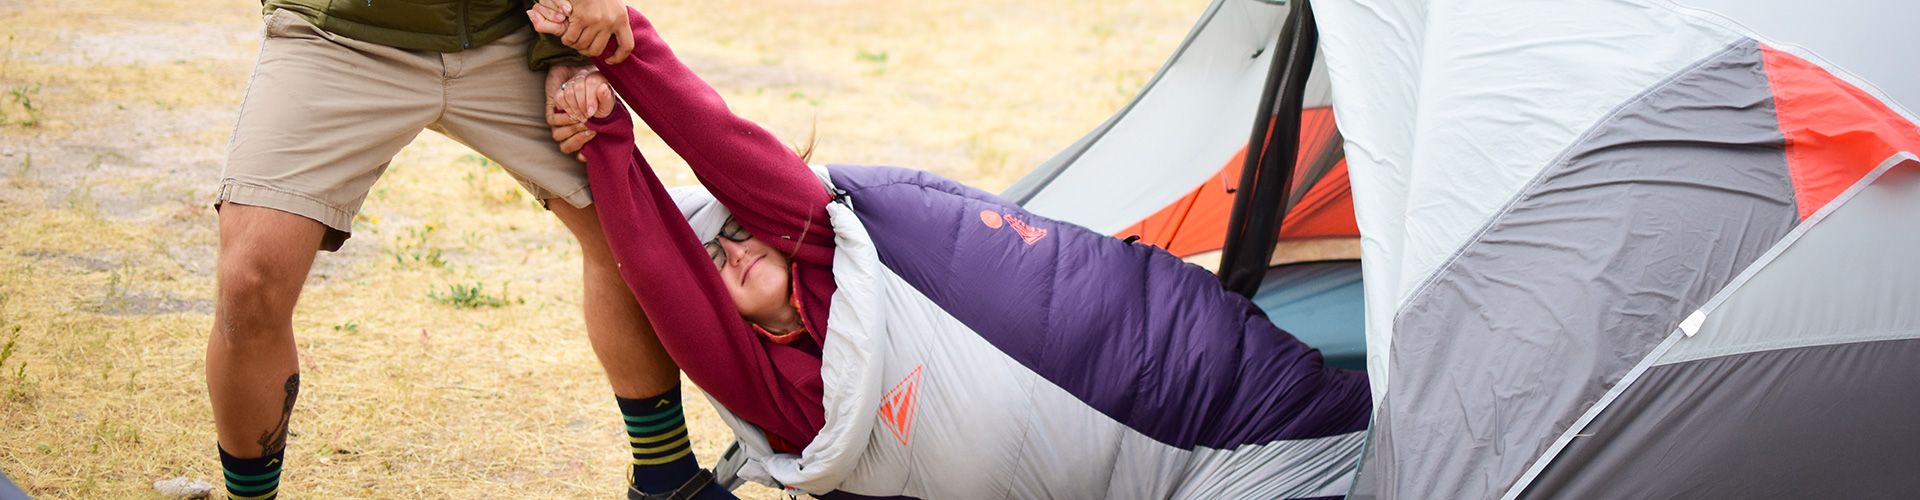 Man playfully pulling a woman out of her tent